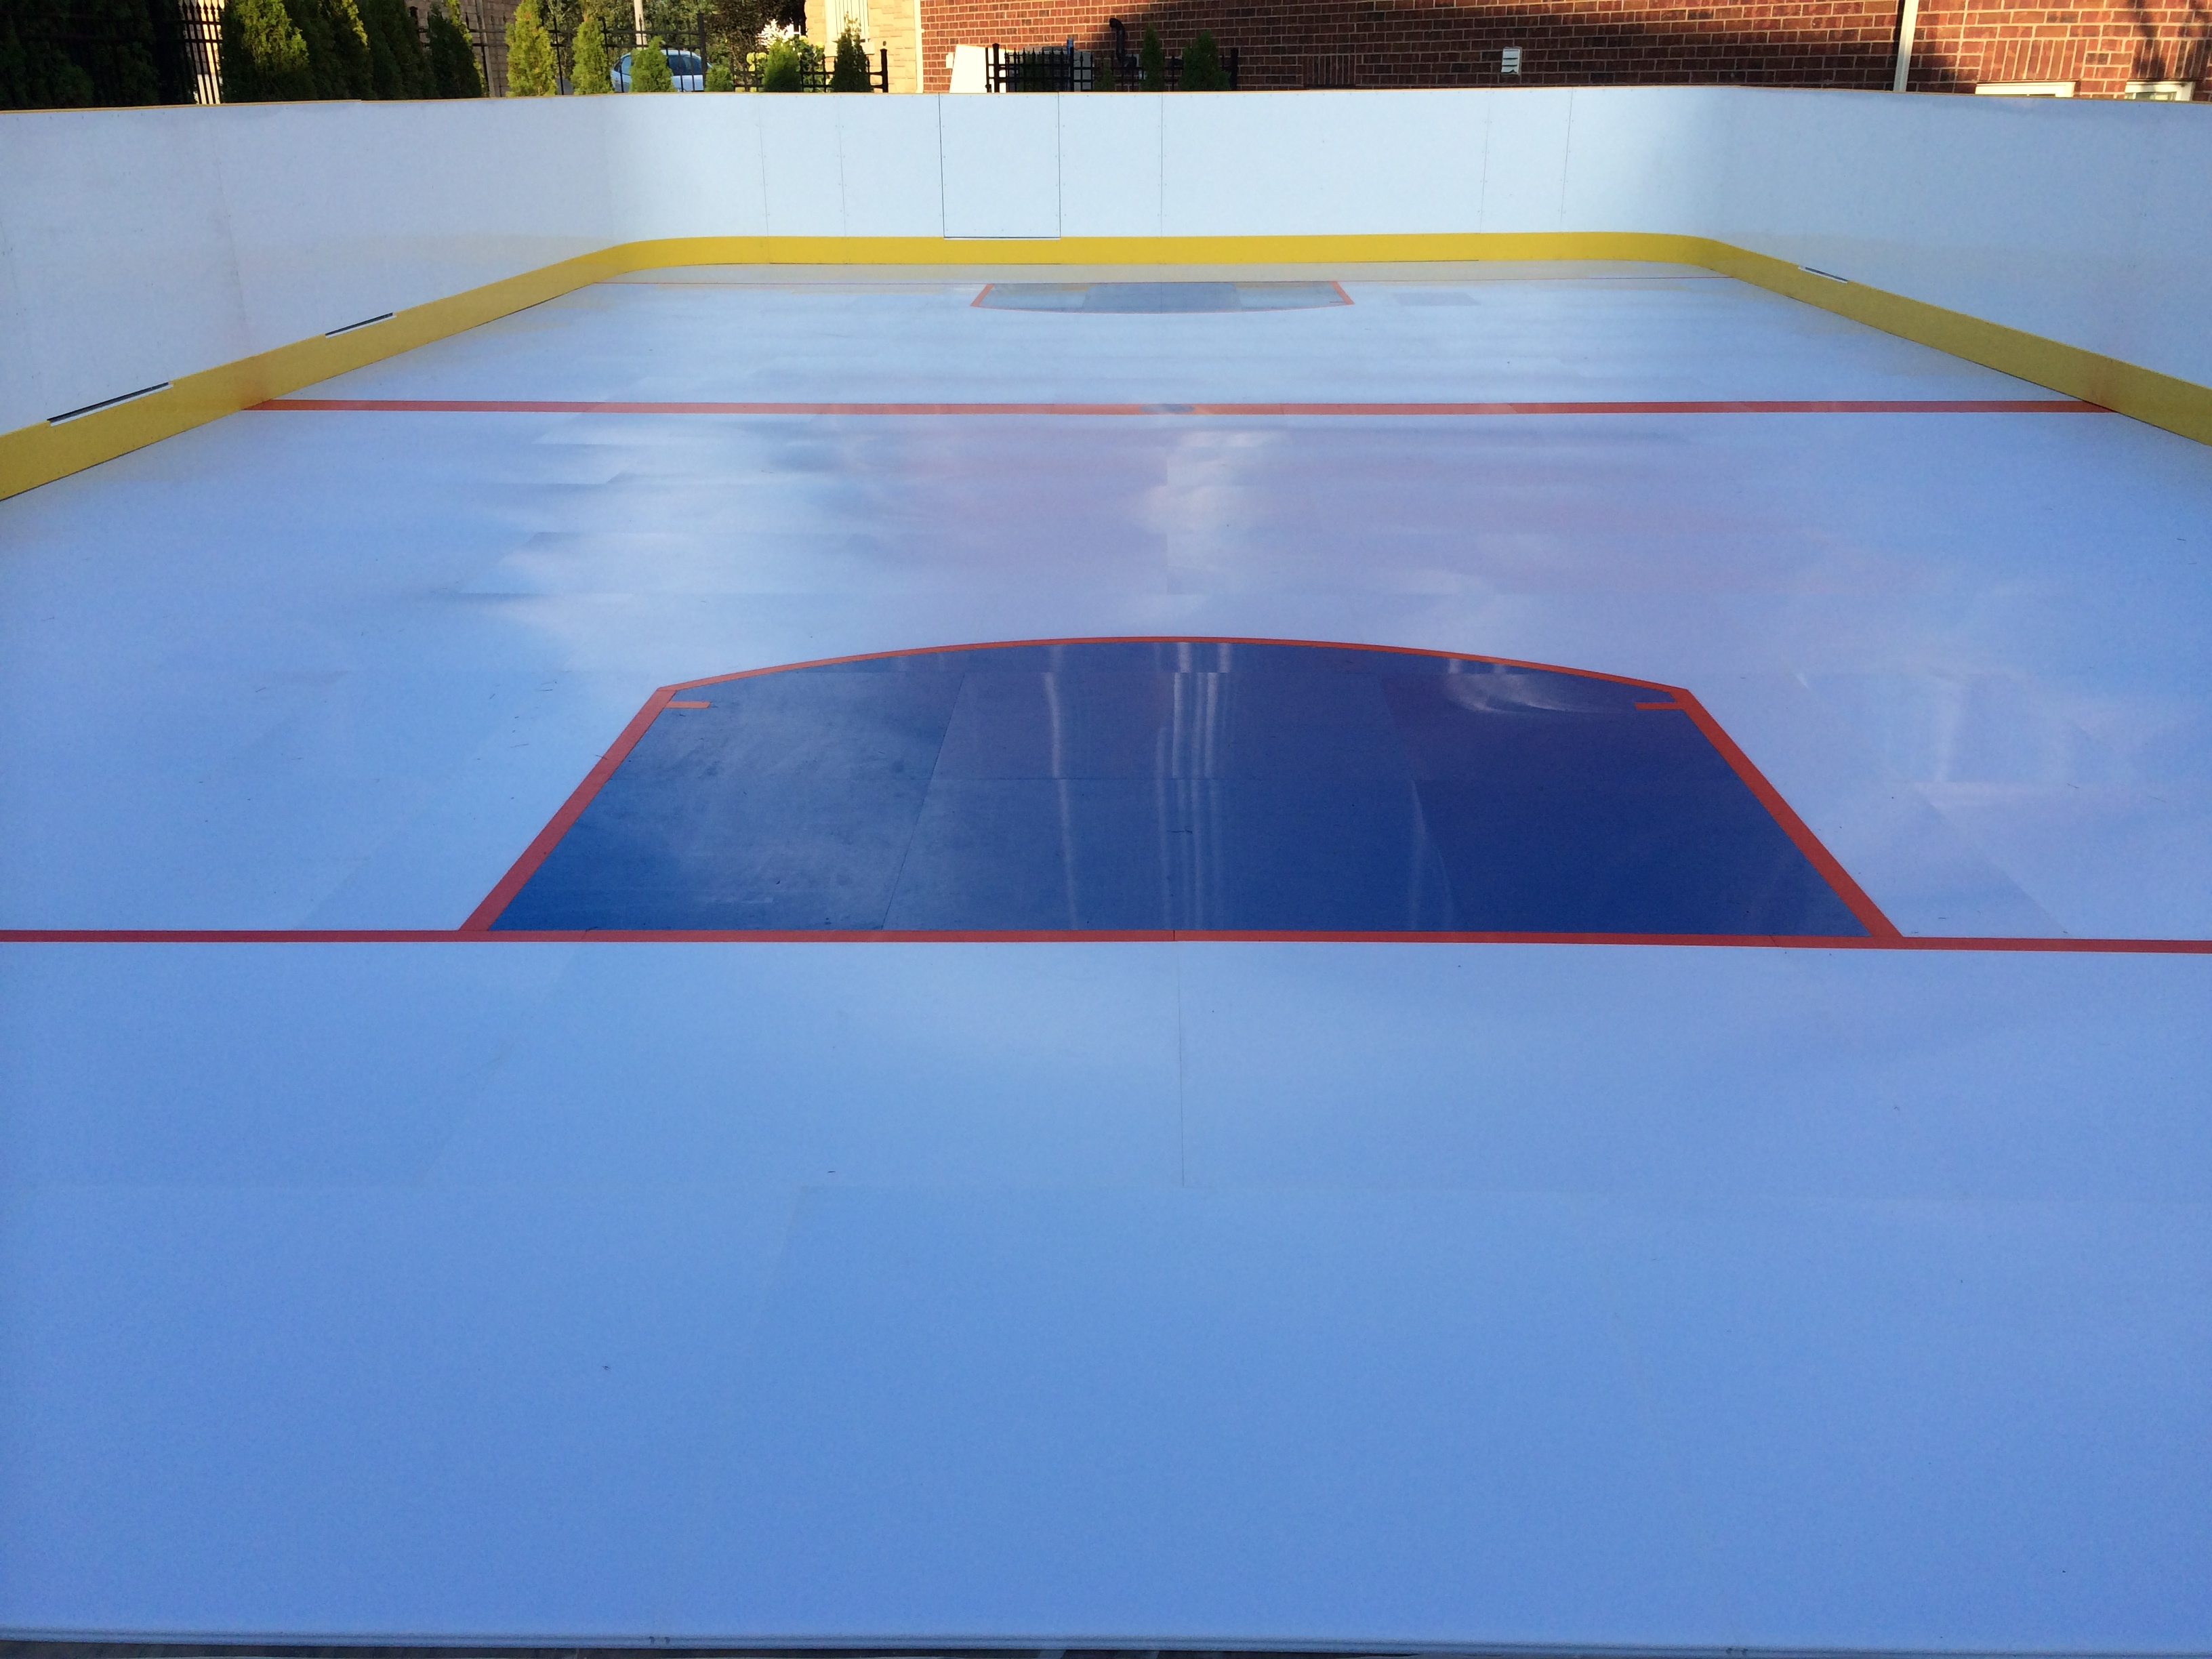 A synthetic backyard rink in Ontario, Canada with hockey boards